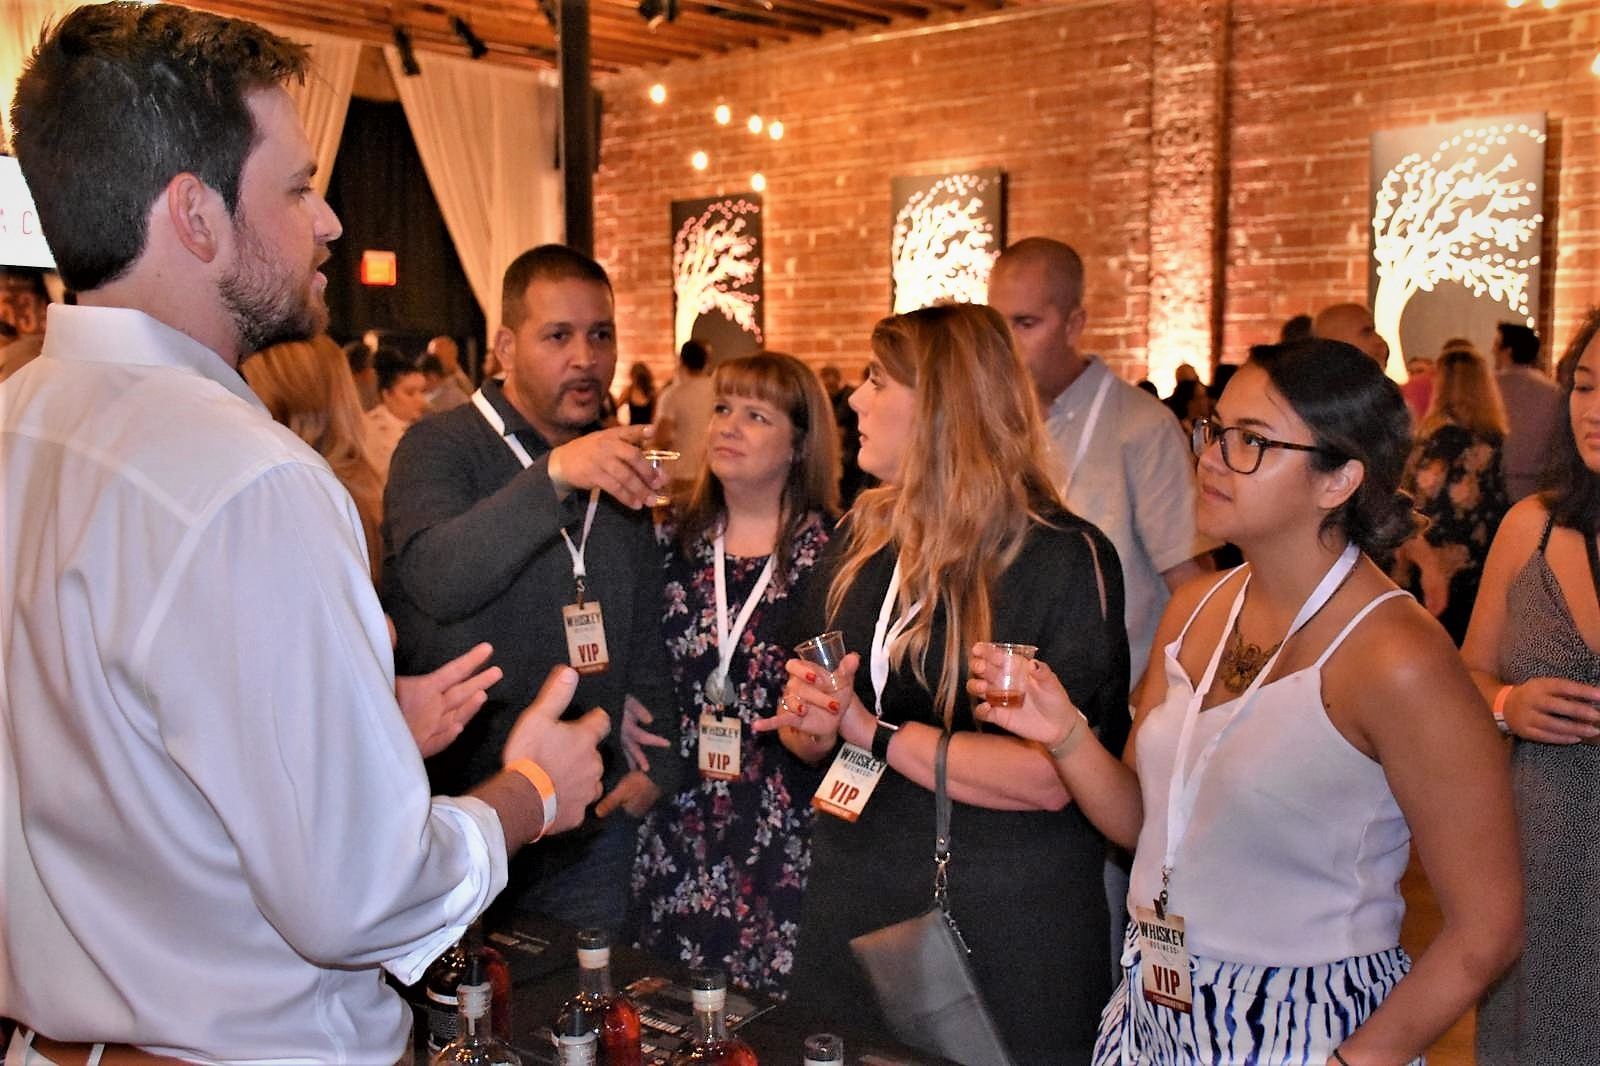 Whiskey Drinking Trade Show WHISKEY BUSINESS at historic downtown St. Pete venue NOVA 535